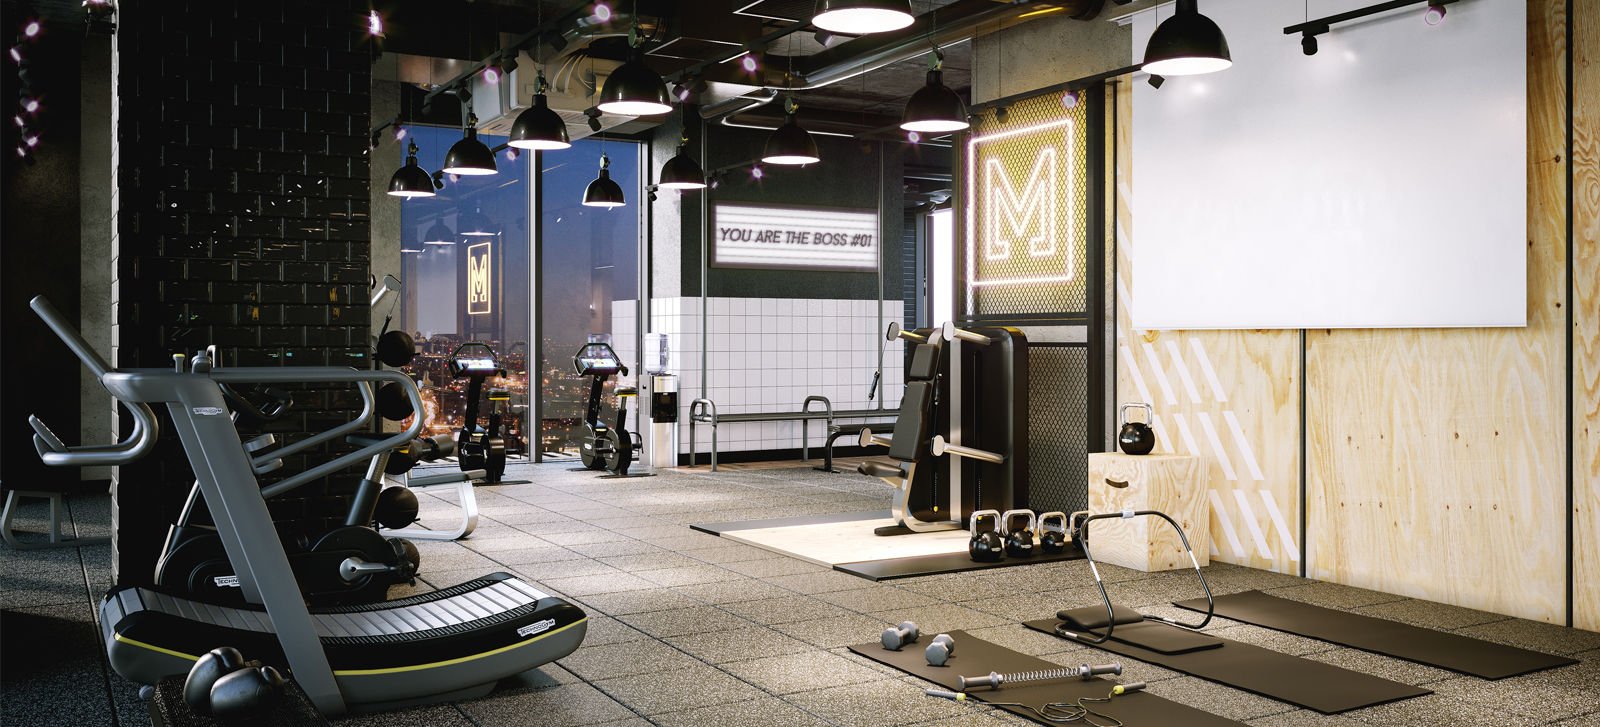 urban style gym with dark carpet tiles and gym equipment